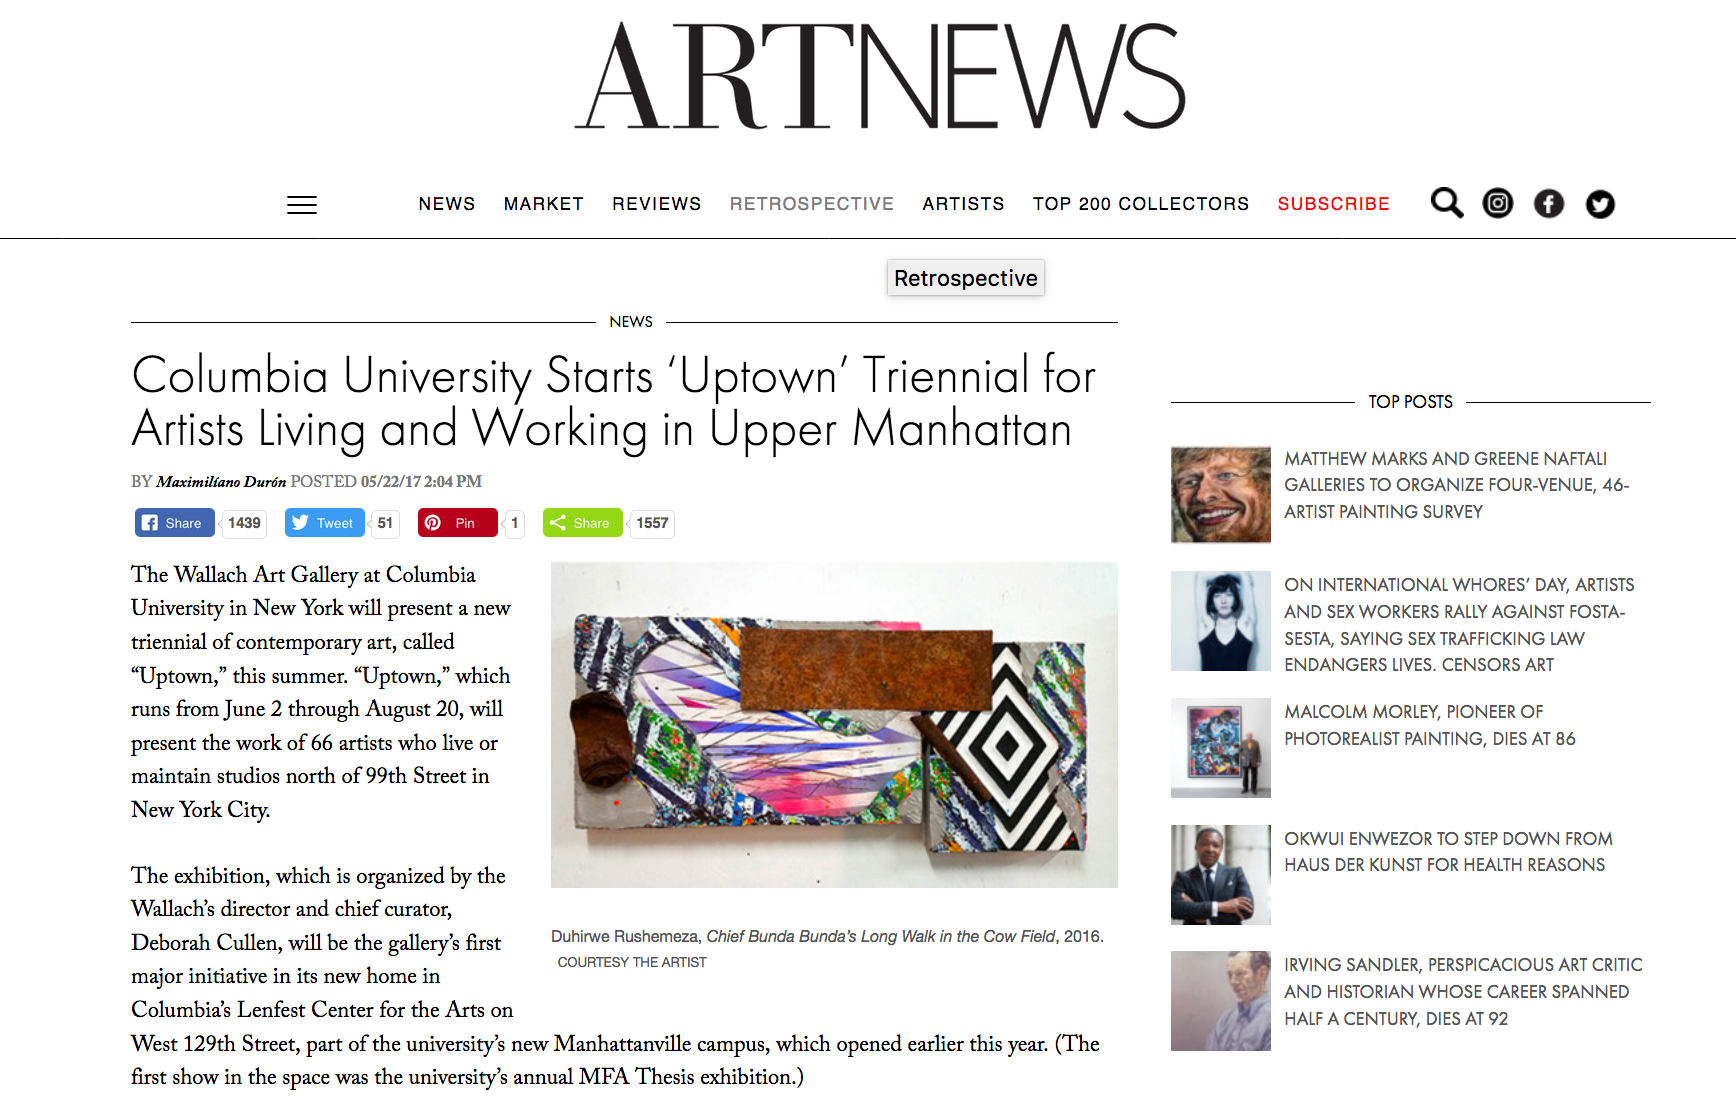 Columbia University Starts 'Uptown' Triennial for Artists Living and Working in Upper Manhattan - Artnews - May 22, 2017